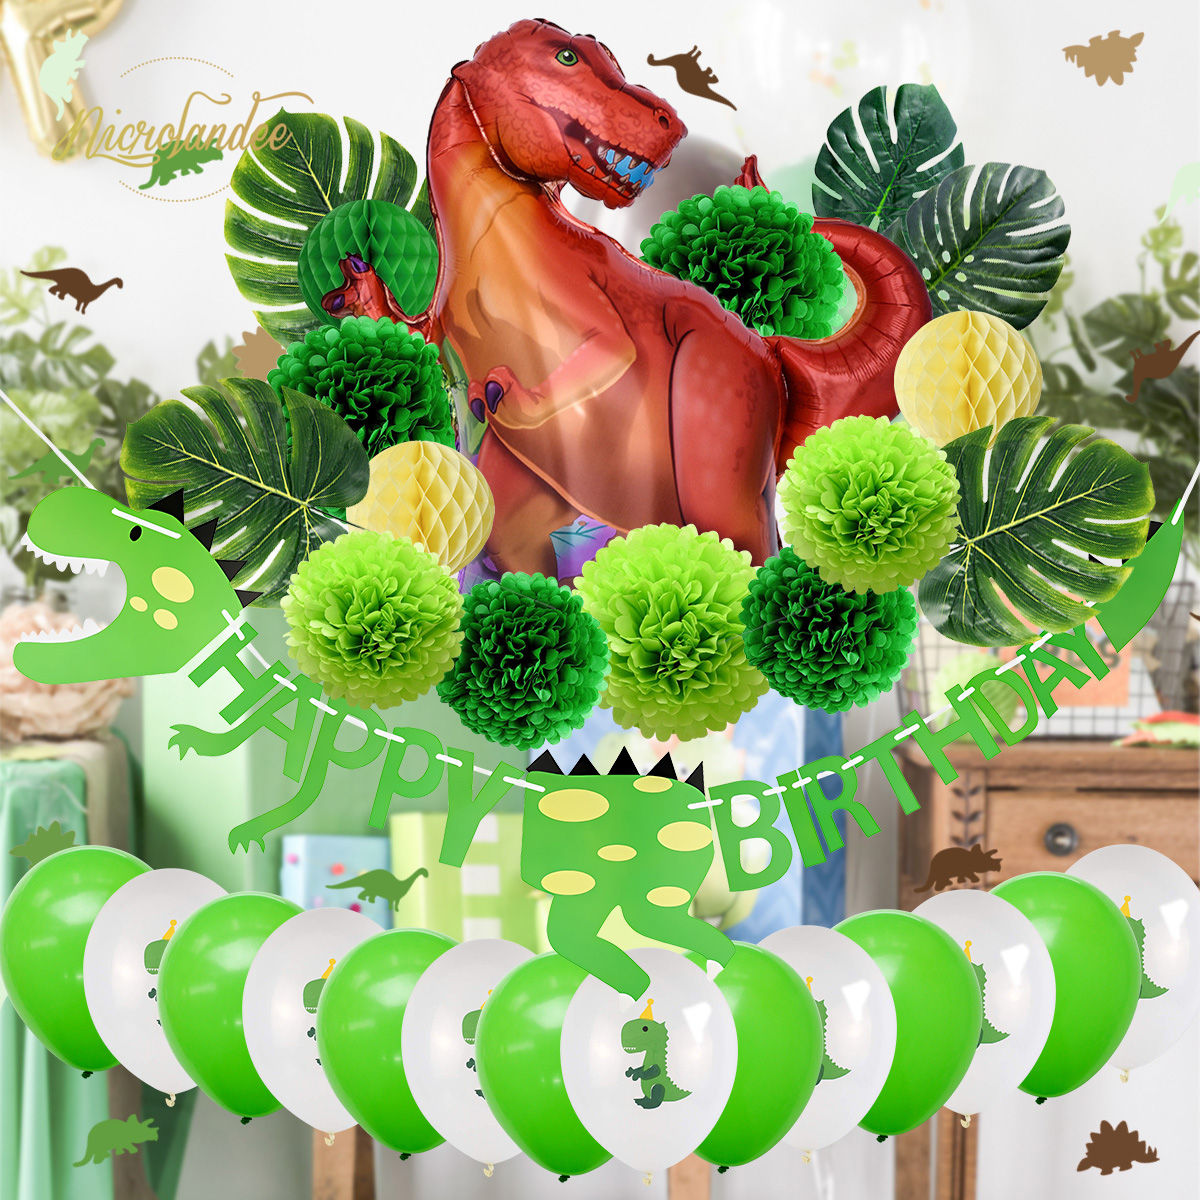 NICROLANDEE 32 pcs set Dinosaur Child Kid Happy Birthday Party Decoration Kit Roar Kids 1st Green Home New DIY Party in Party DIY Decorations from Home Garden